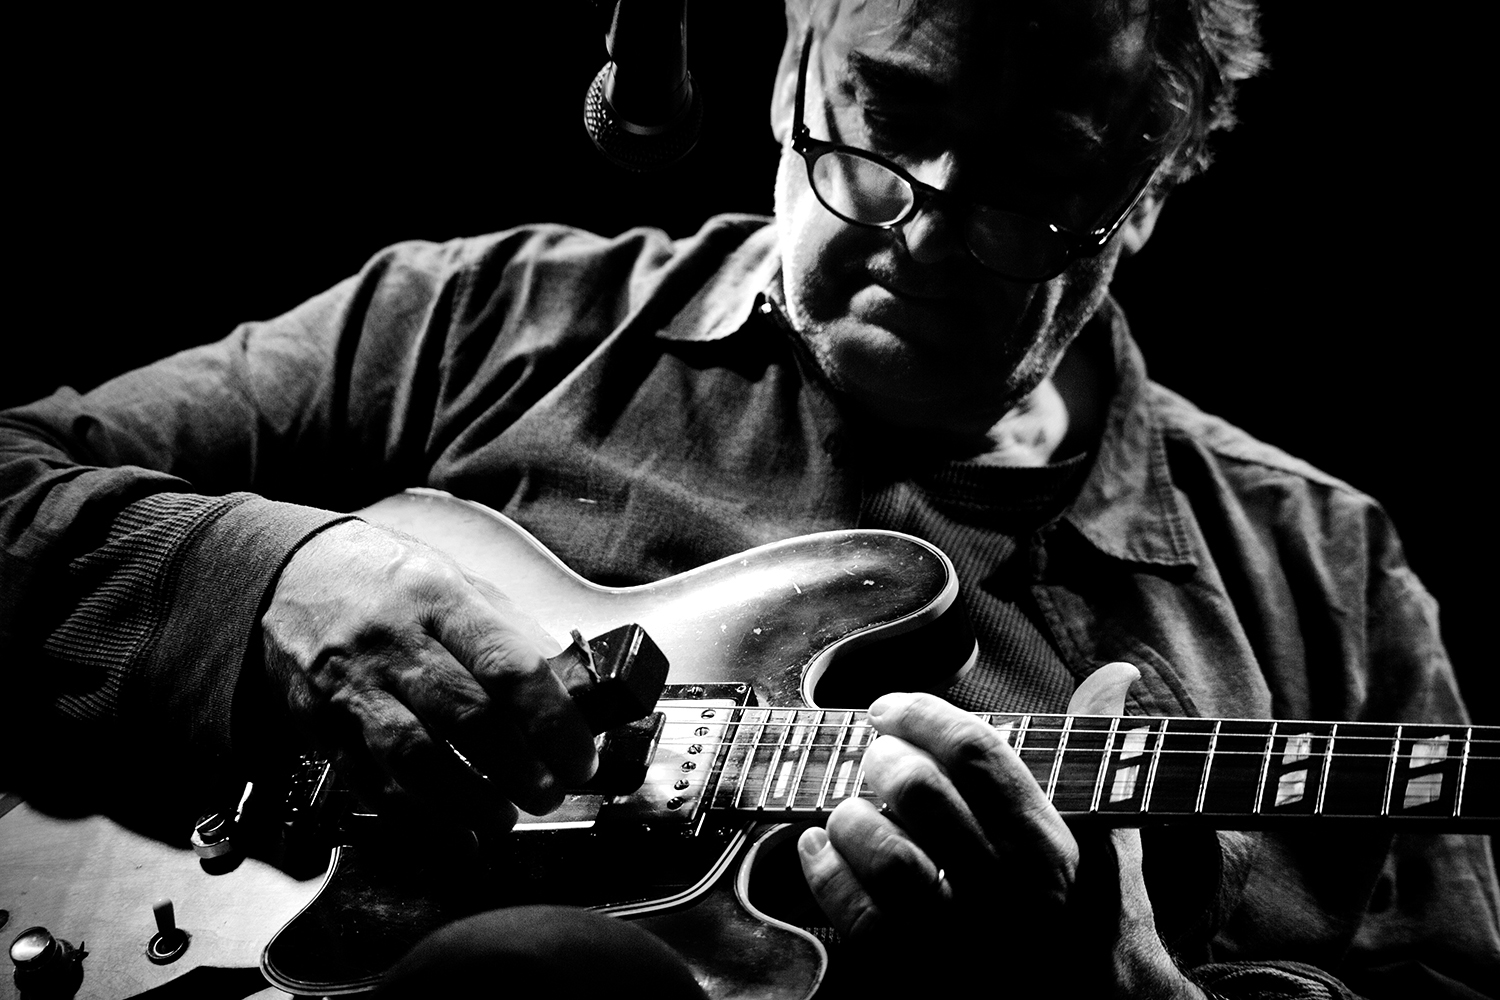 Fred Frith - Concert - Les Ateliers Claus - Brussels, Belgium